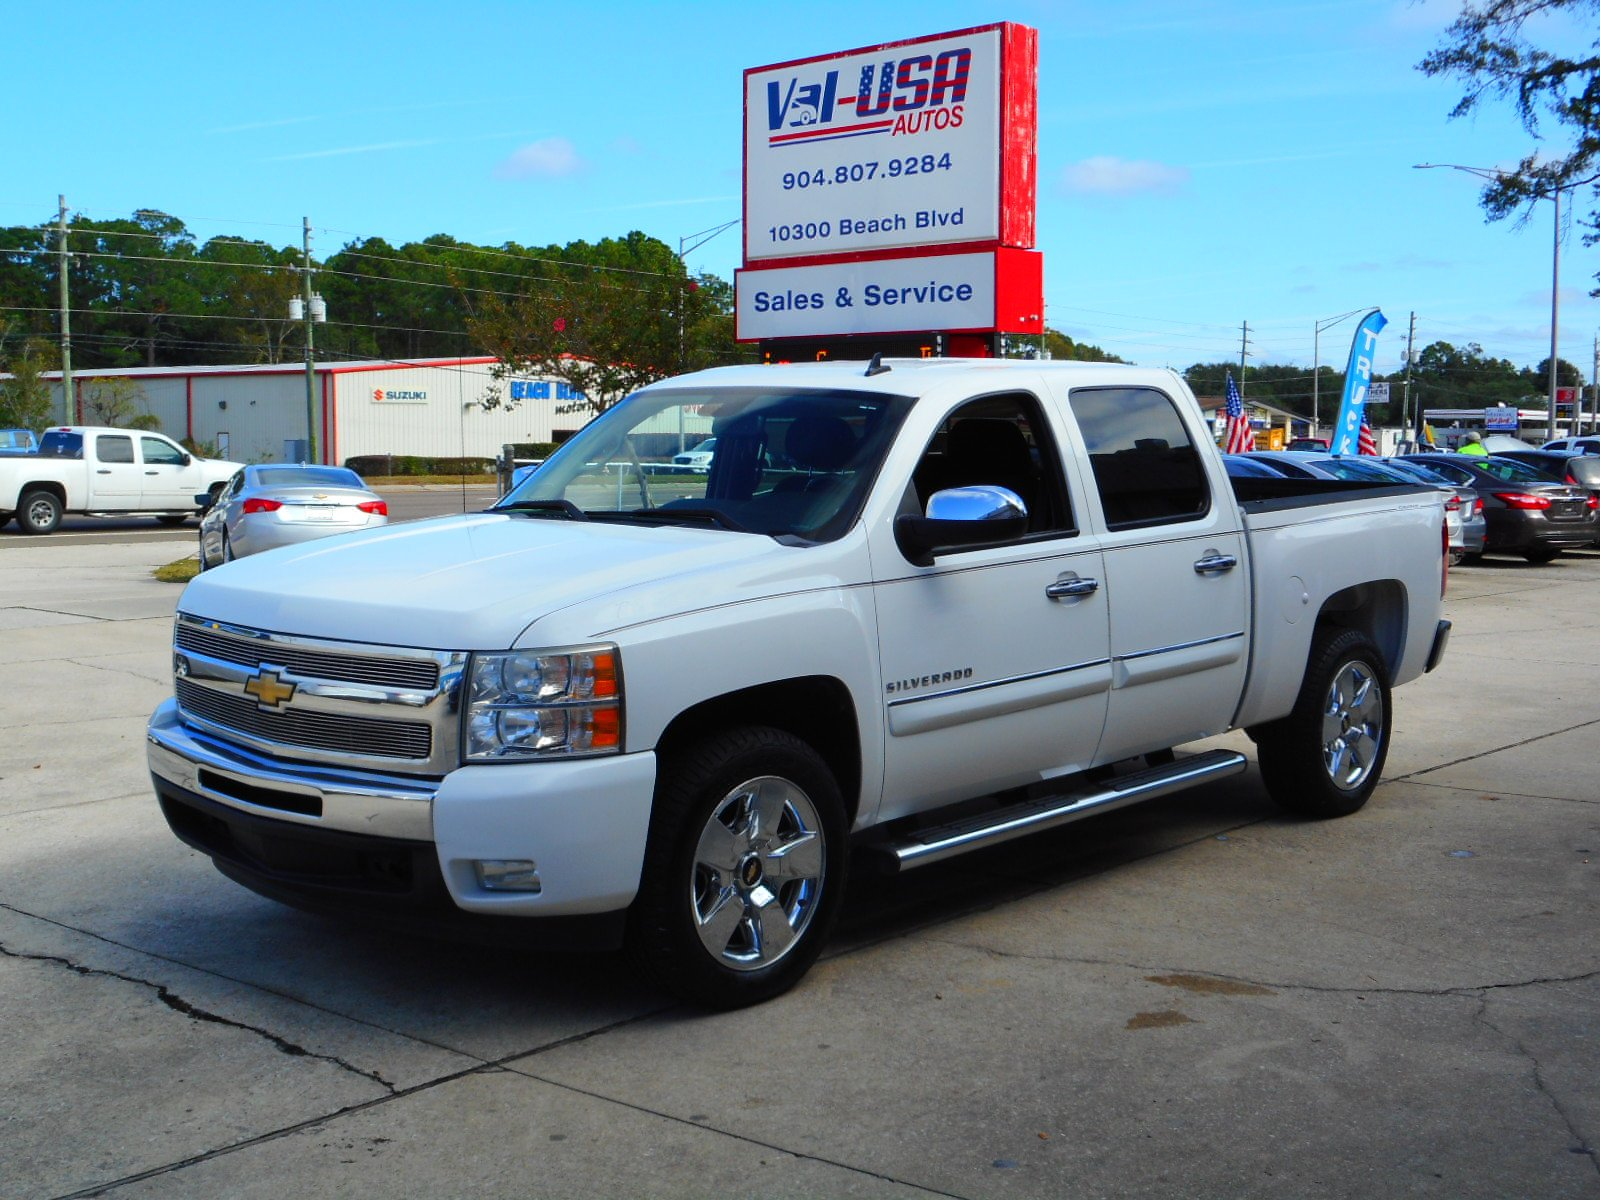 Pre Owned 2010 Chevrolet Silverado 1500 For Sale Jacksonville FL